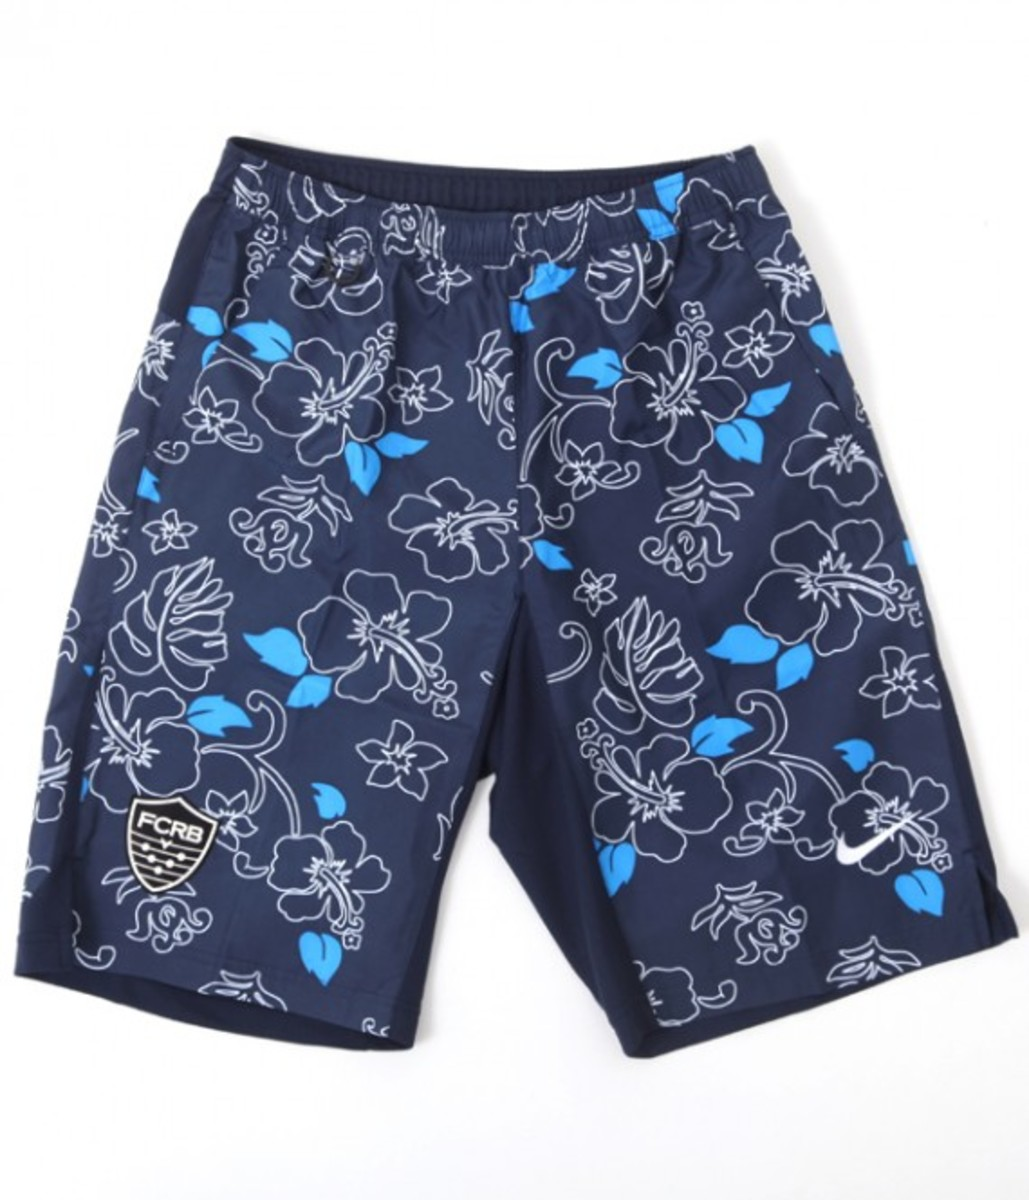 fcrb-five-game-shorts-navy-01